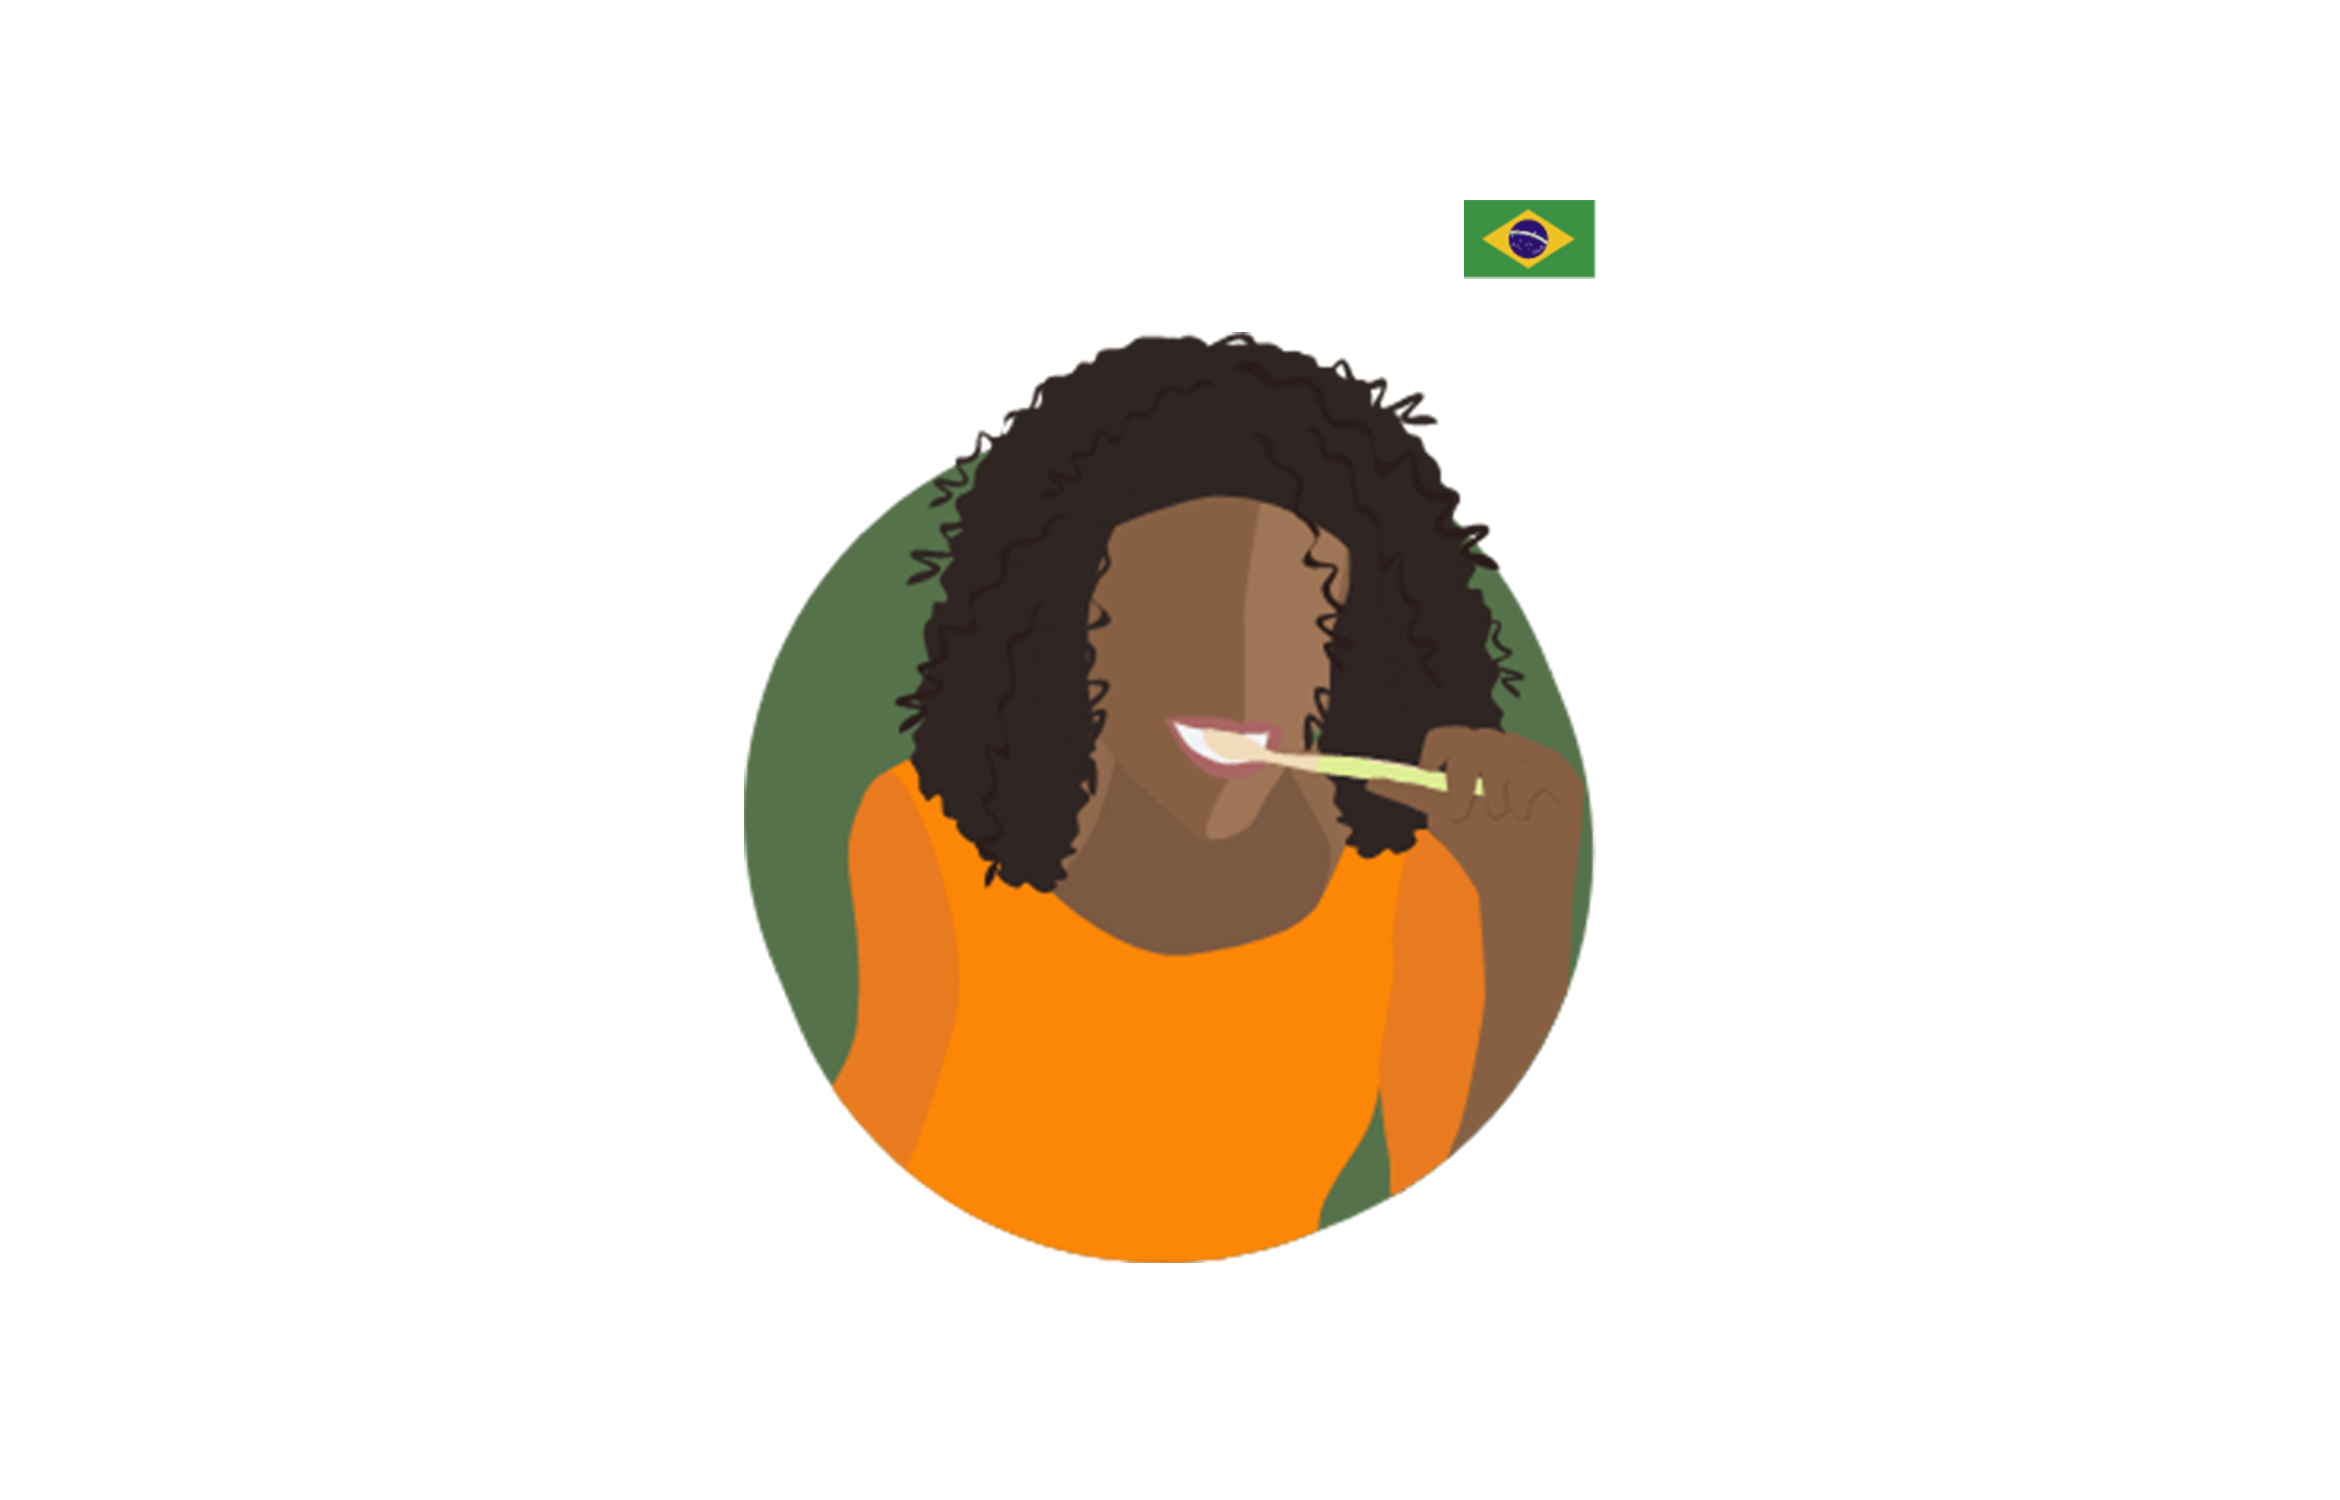 illustration of a woman brushing her teeth